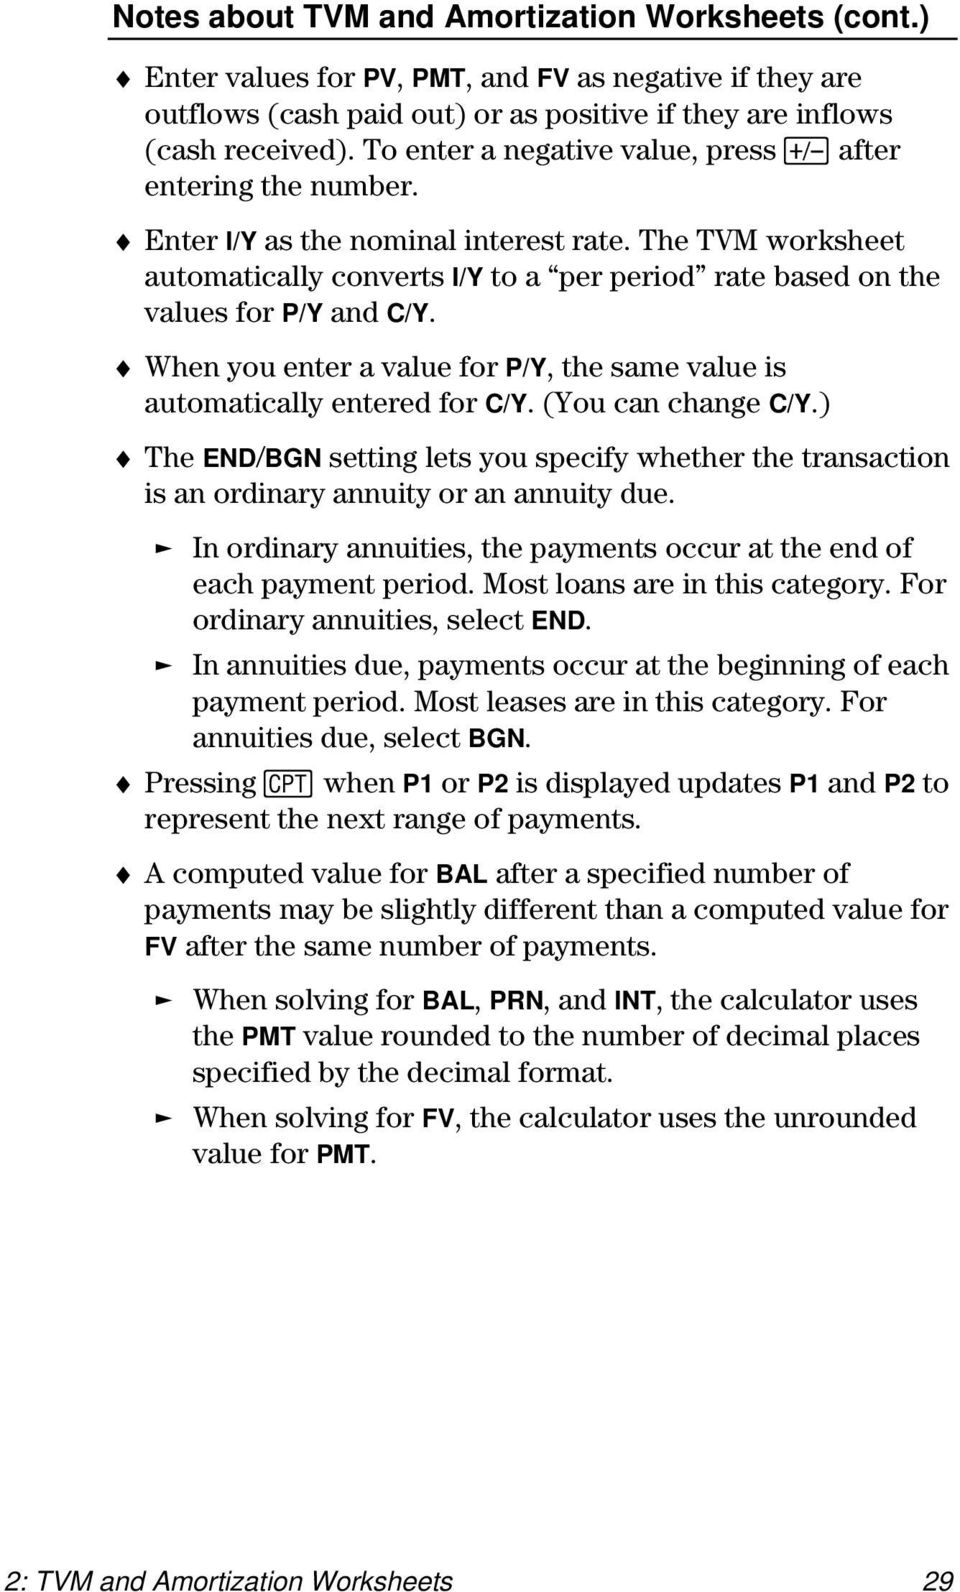 The TVM worksheet automatically converts I/Y to a per period rate based on the values for P/Y and C/Y. When you enter a value for P/Y, the same value is automatically entered for C/Y.